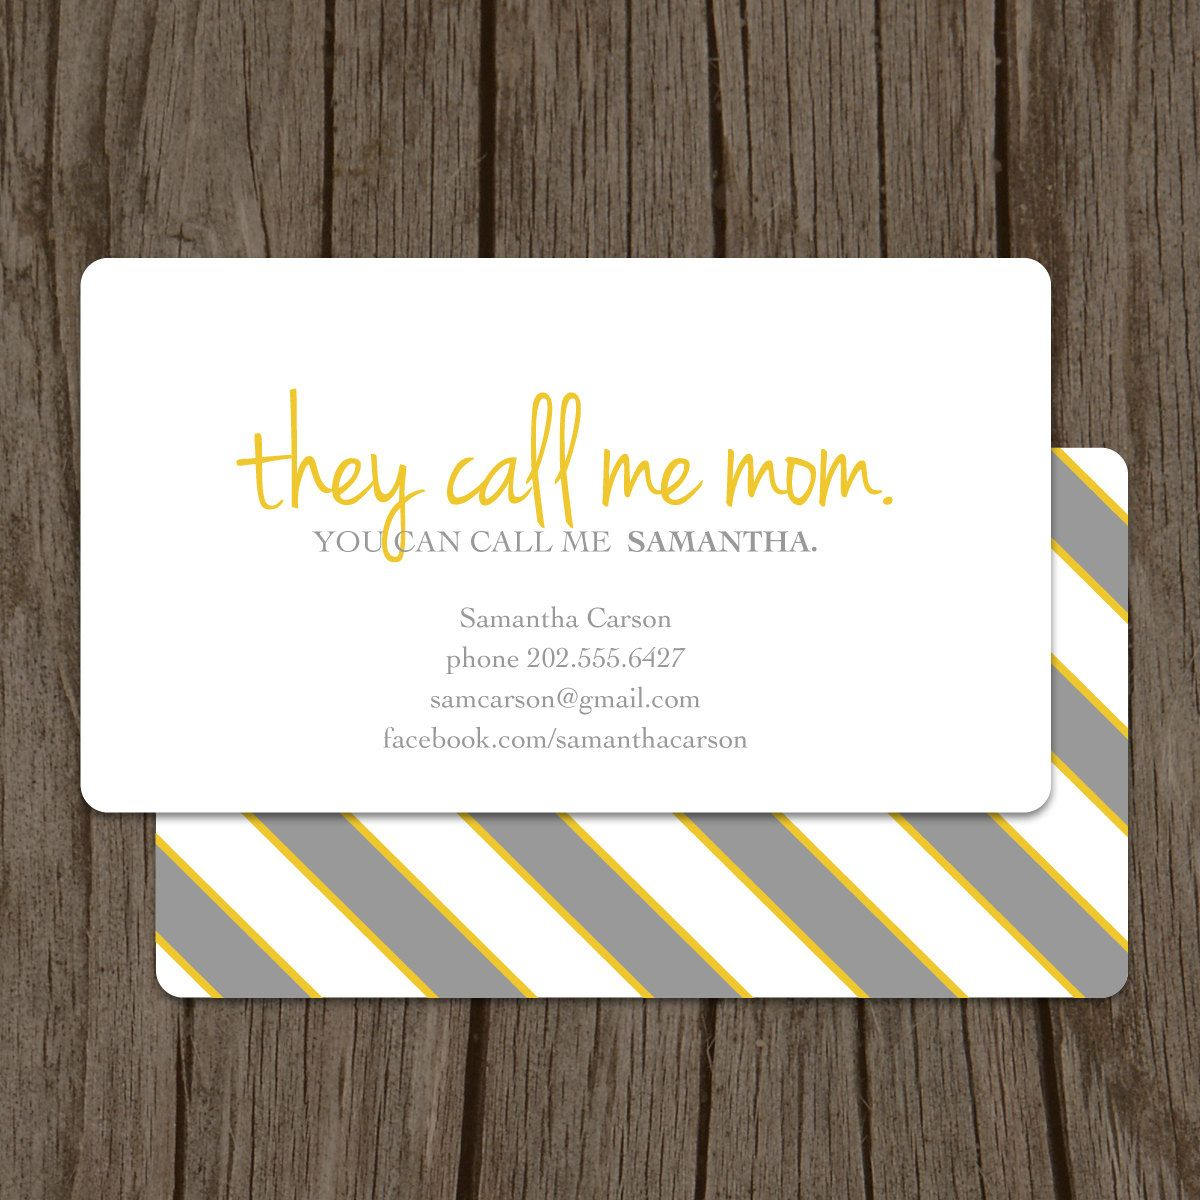 They call me mom mommy card so cute design pinterest they call me mom business card calling card mommy card contact card mom business cards family calling cards family business cards colourmoves